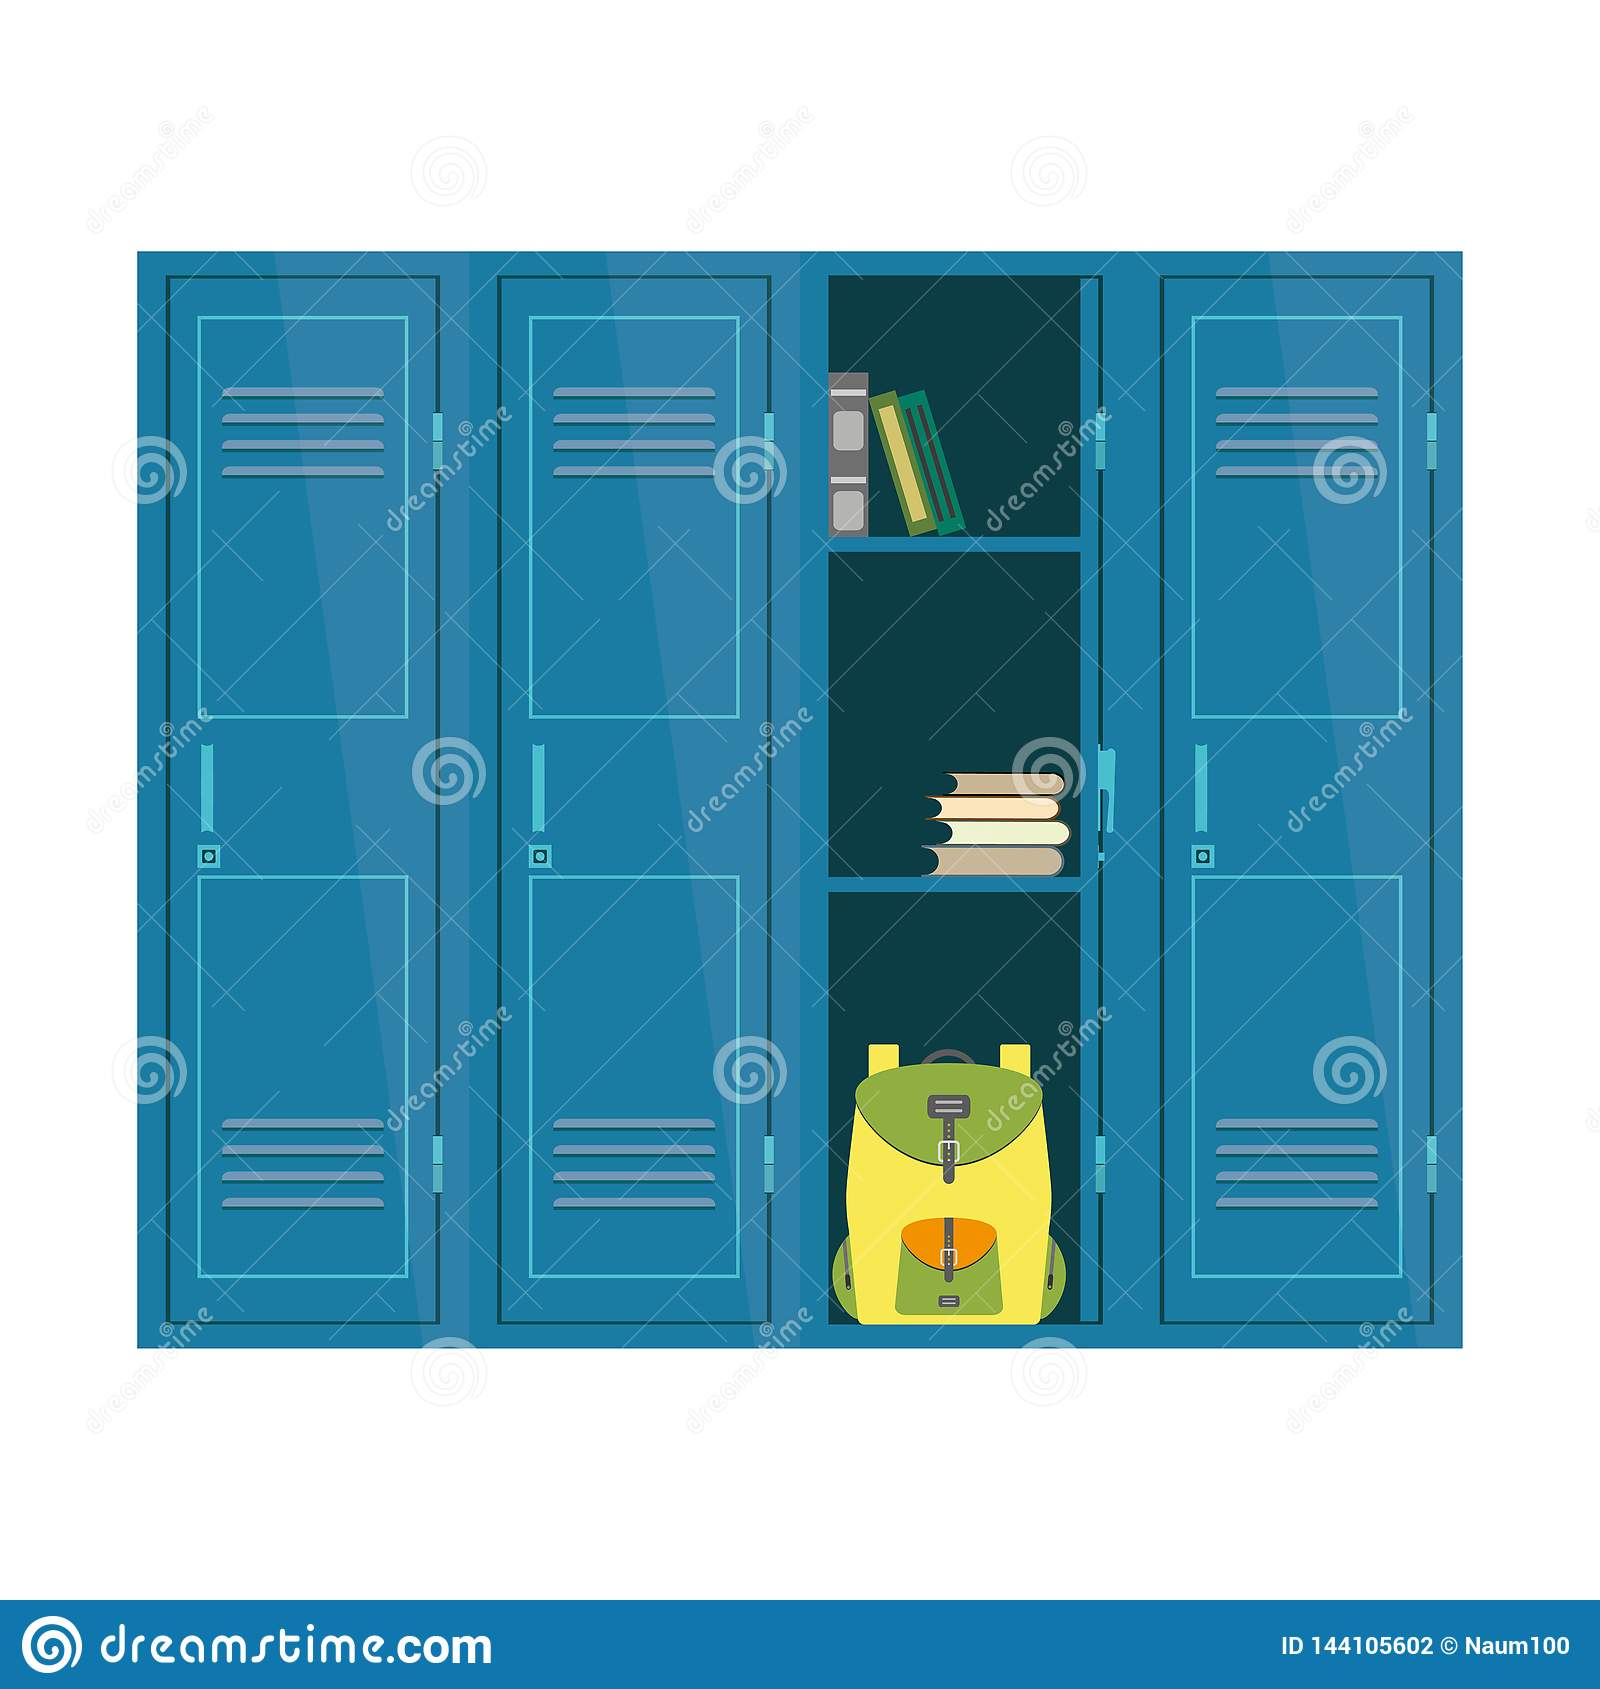 Cartoon School Lockers Student Furniture Isolated On White Backg Stock Vector Illustration Of Colorful Organisation 144105602